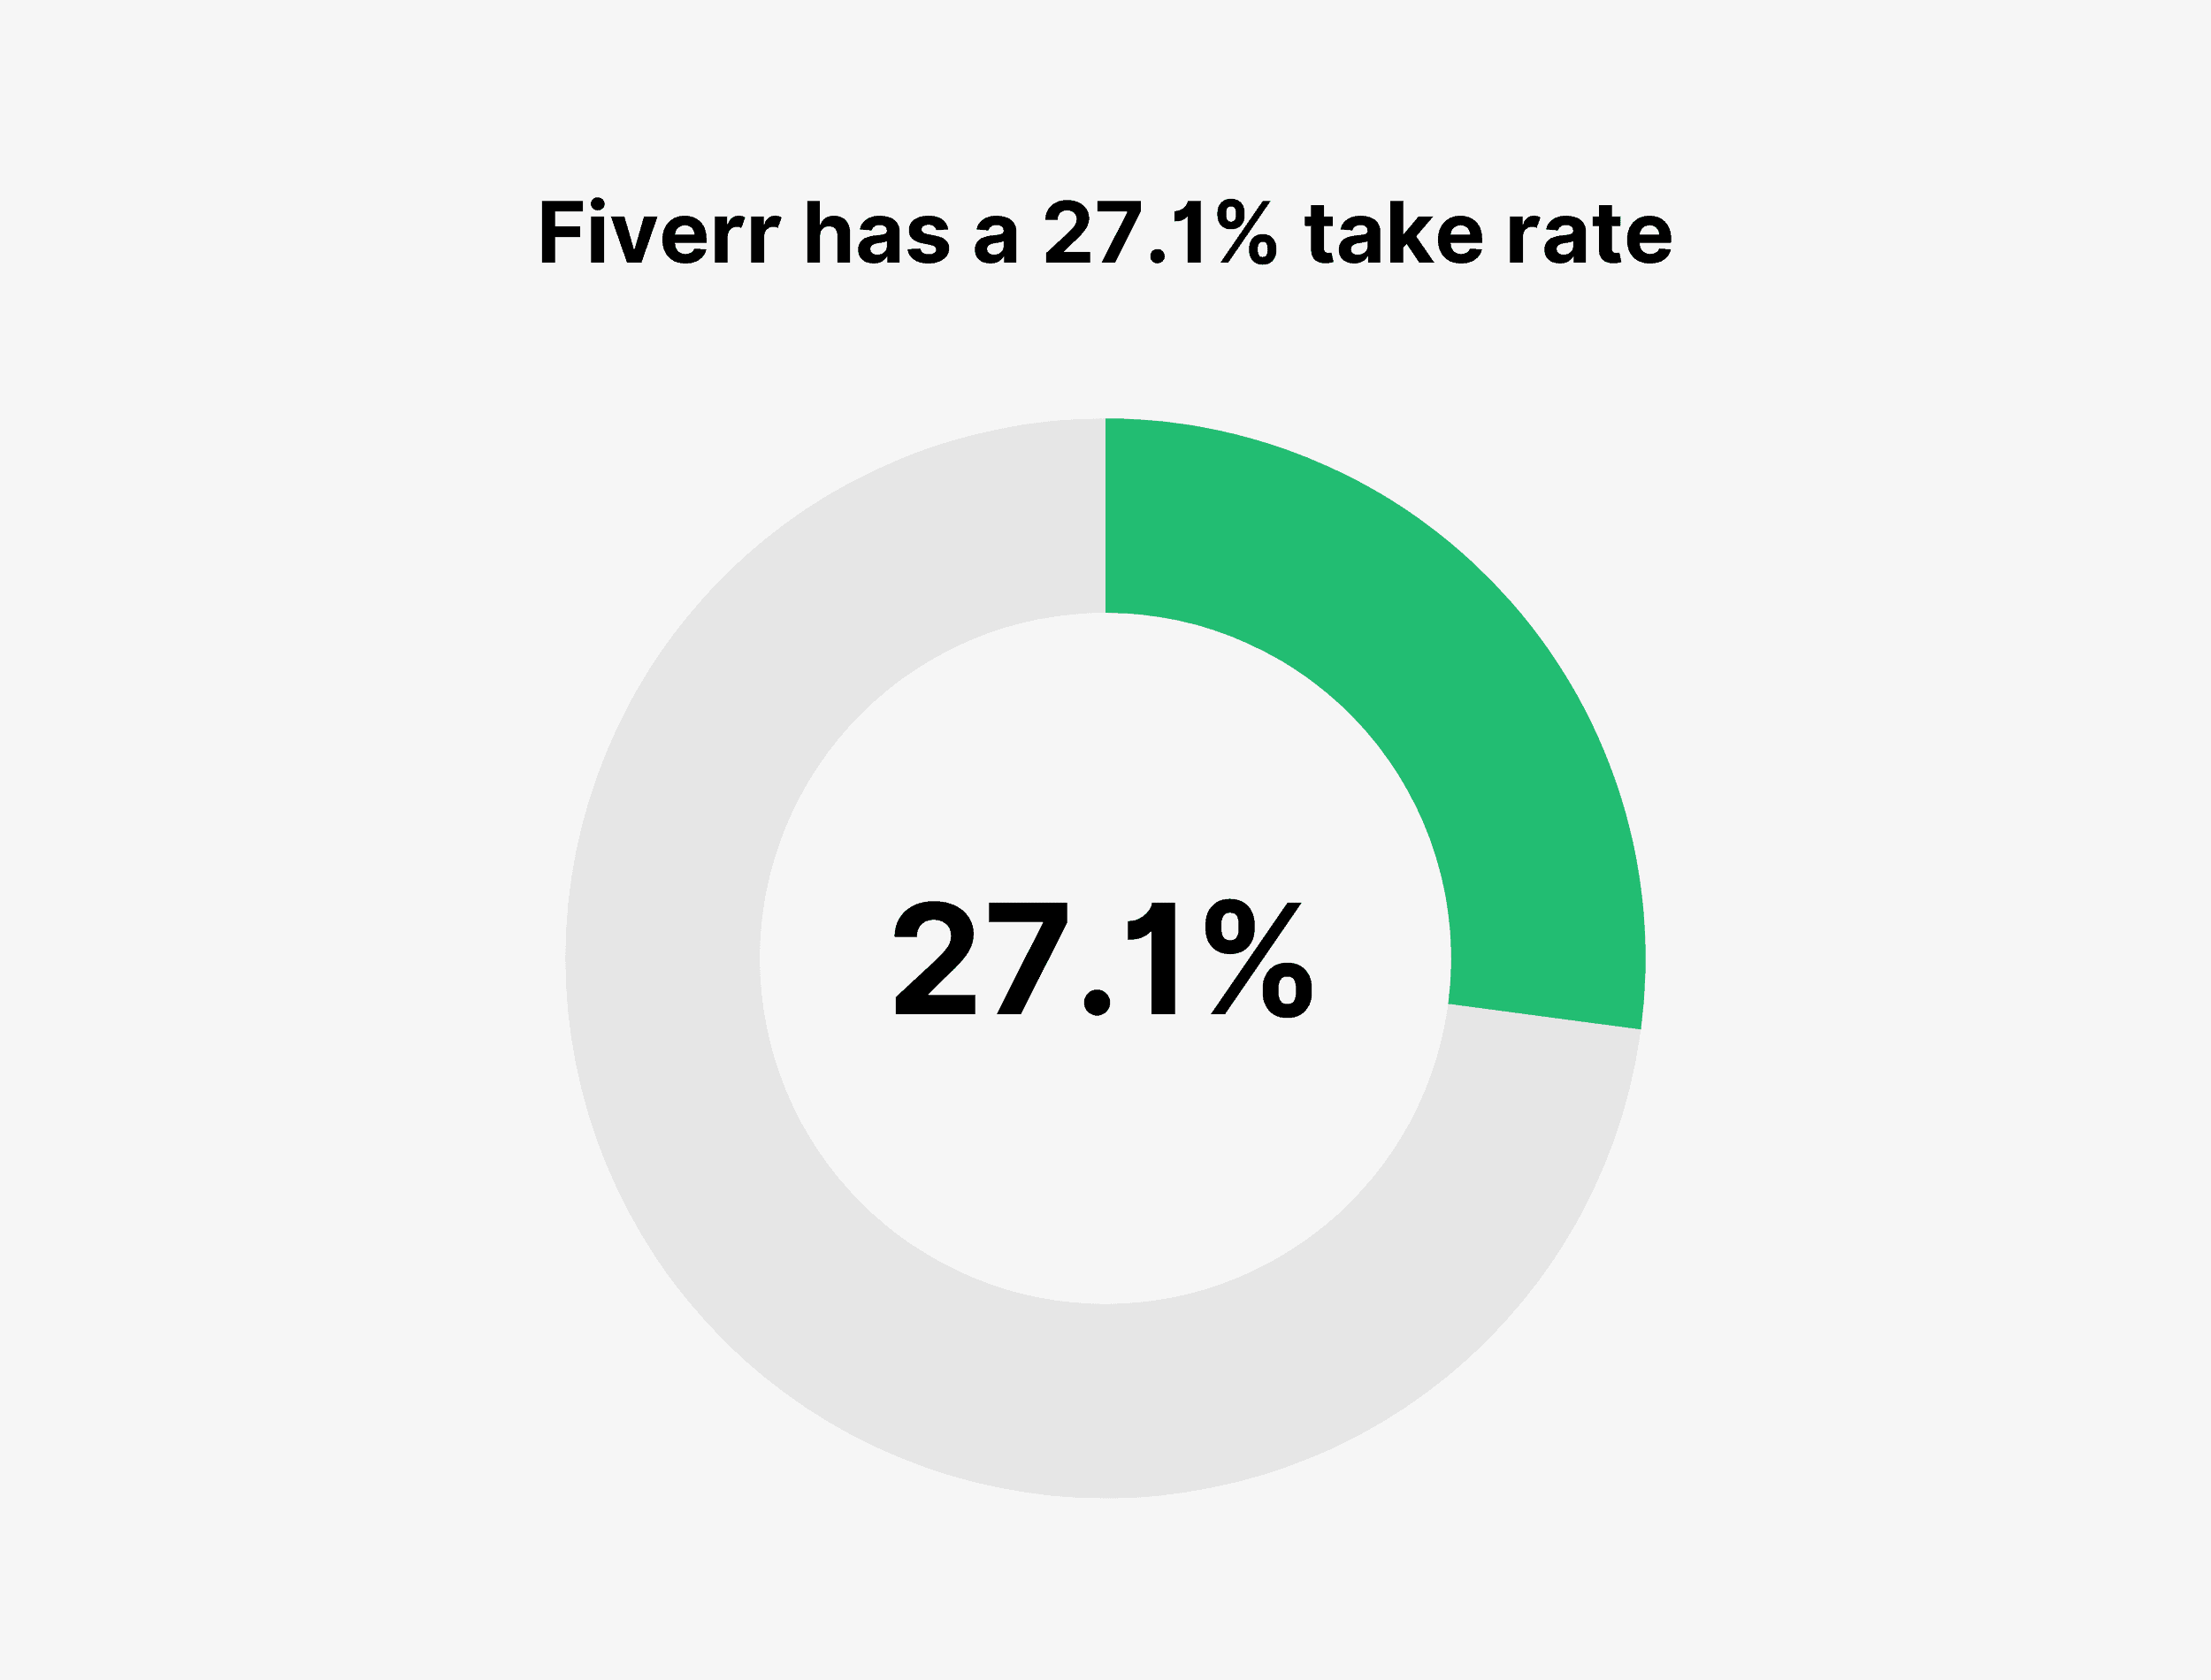 Fiverr has a 27.1% take rate